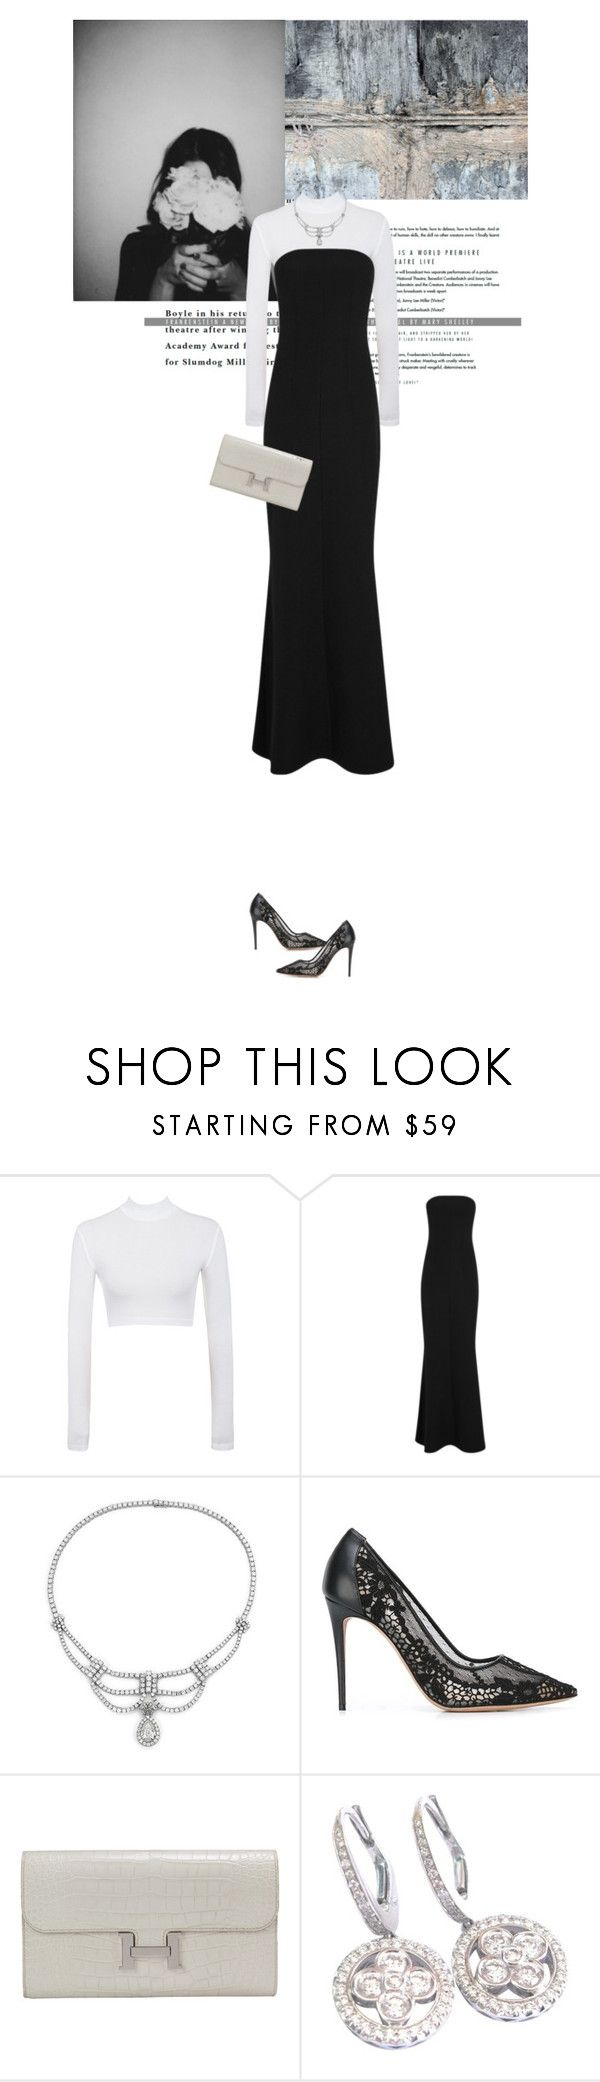 """Untitled #1746"" by the2ndchild ❤ liked on Polyvore featuring WALL, Safiyaa, Blue Nile, Valentino, Hermès and Louis Vuitton"